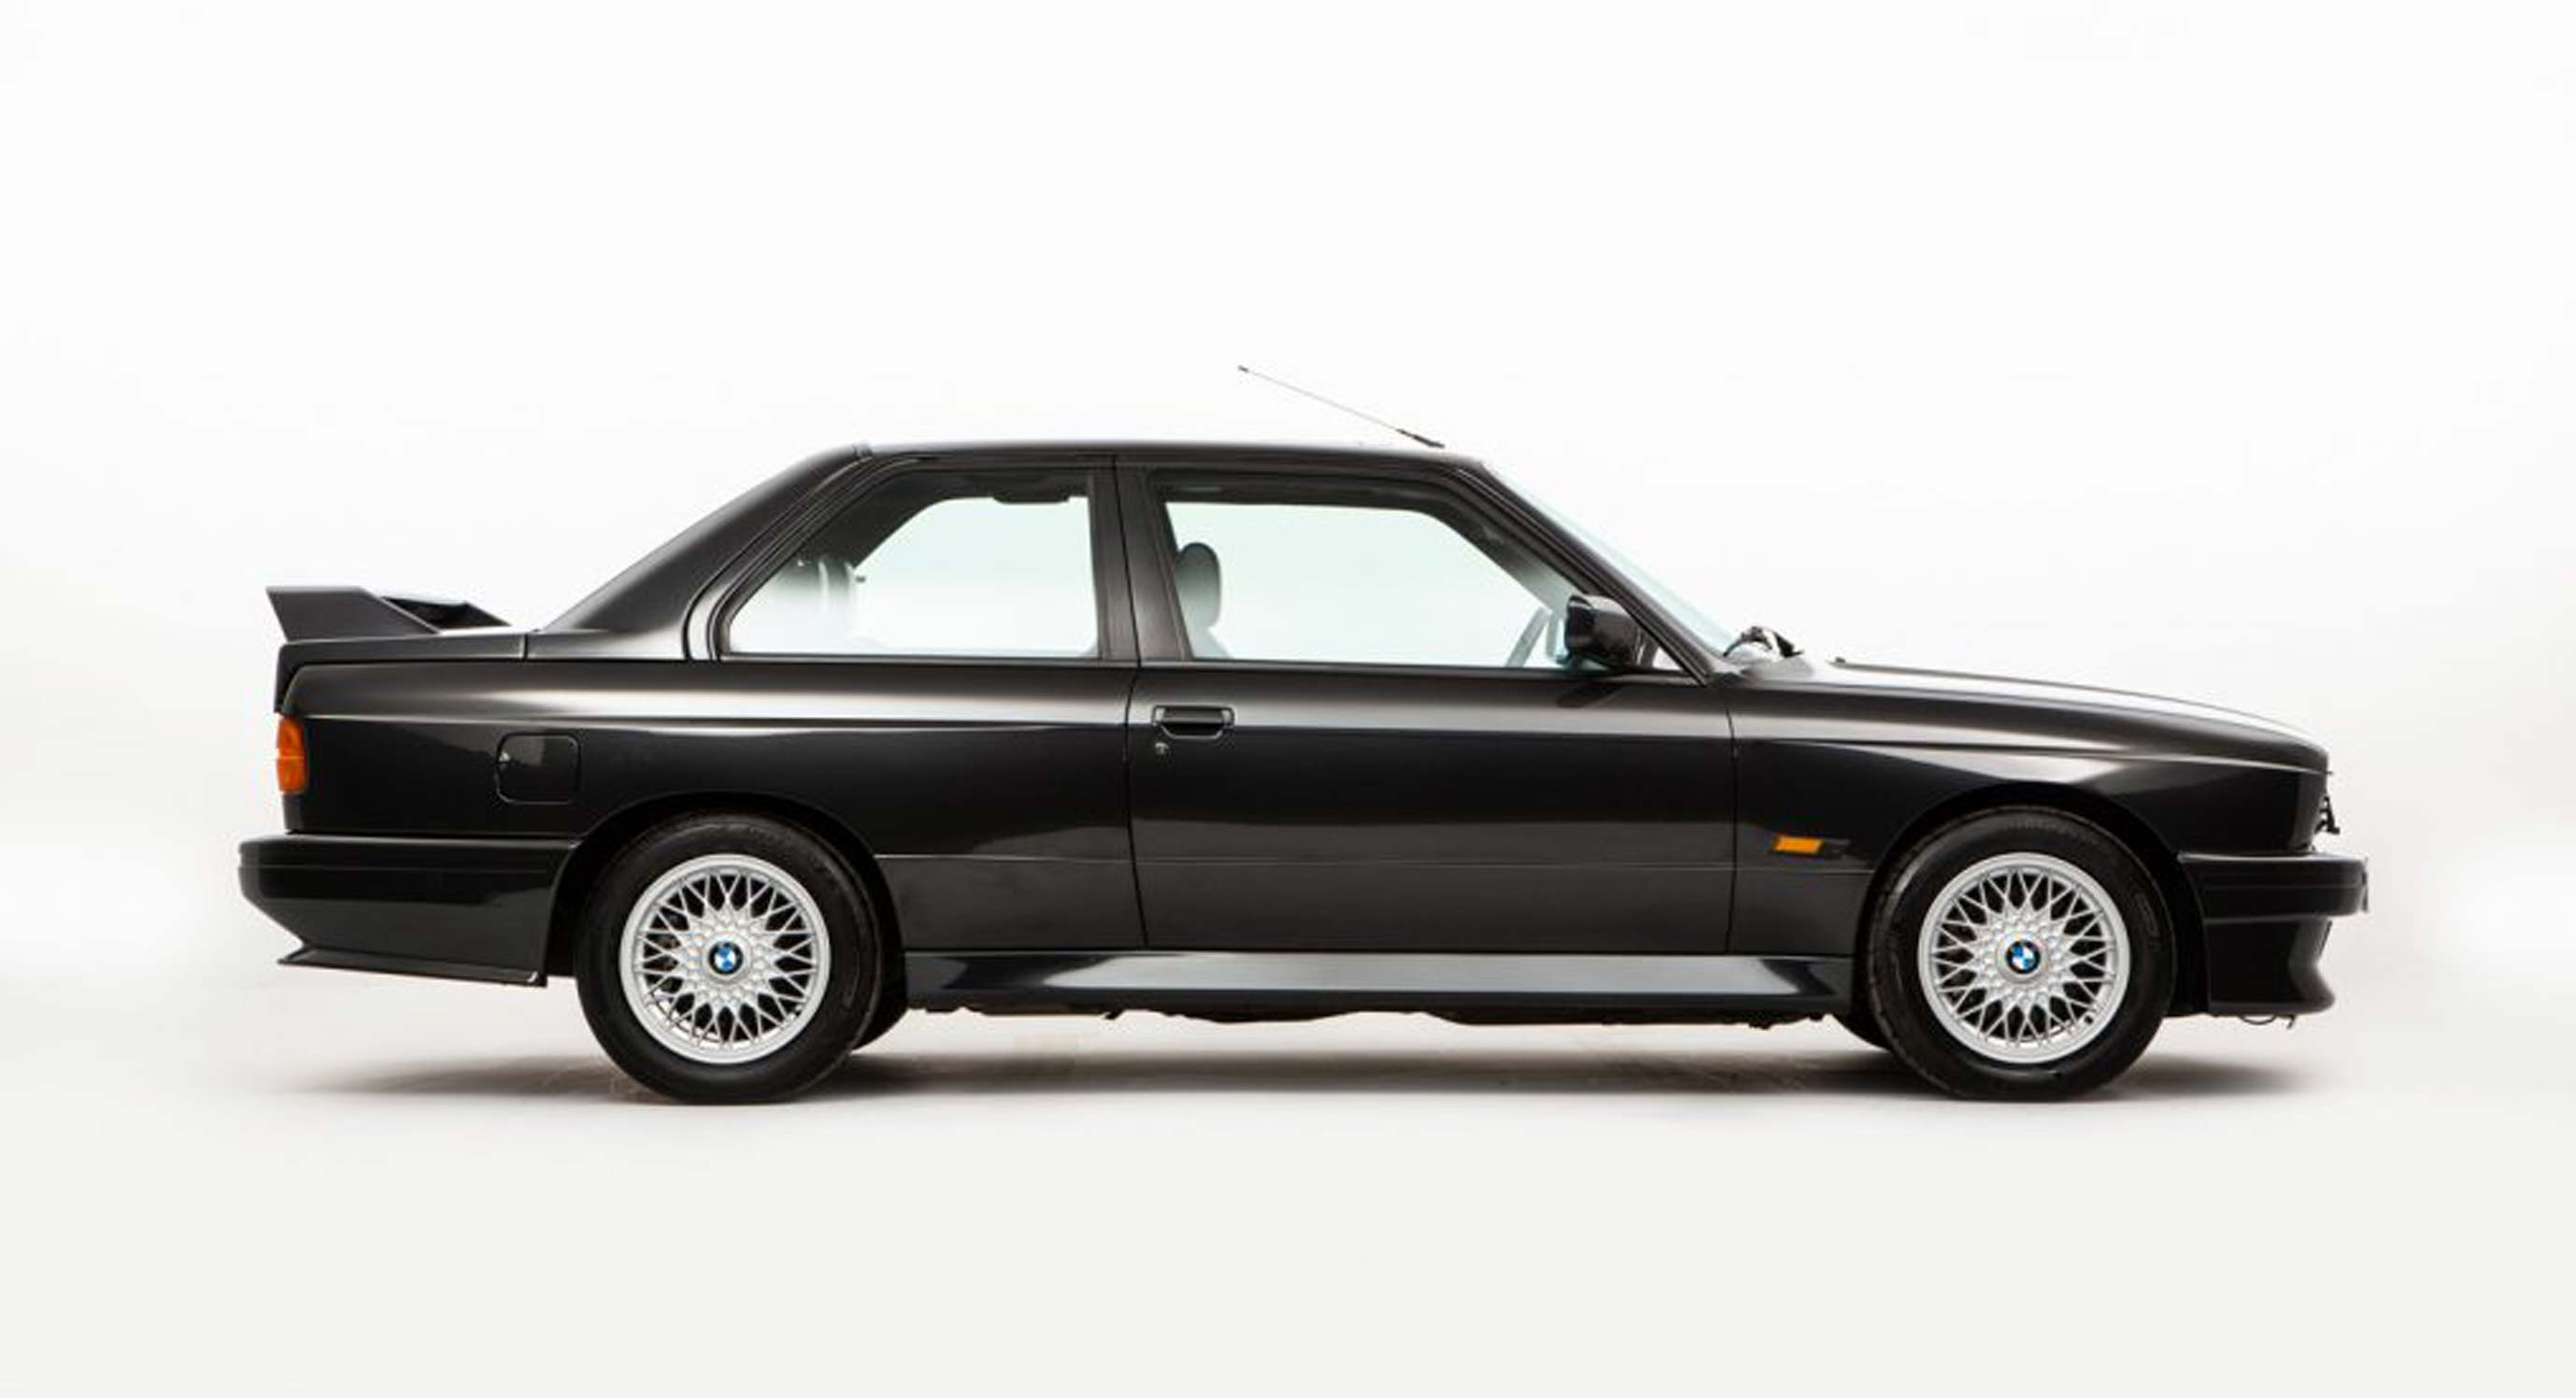 This 1988 Bmw E30 M3 Is A Blast From The Past Opumo